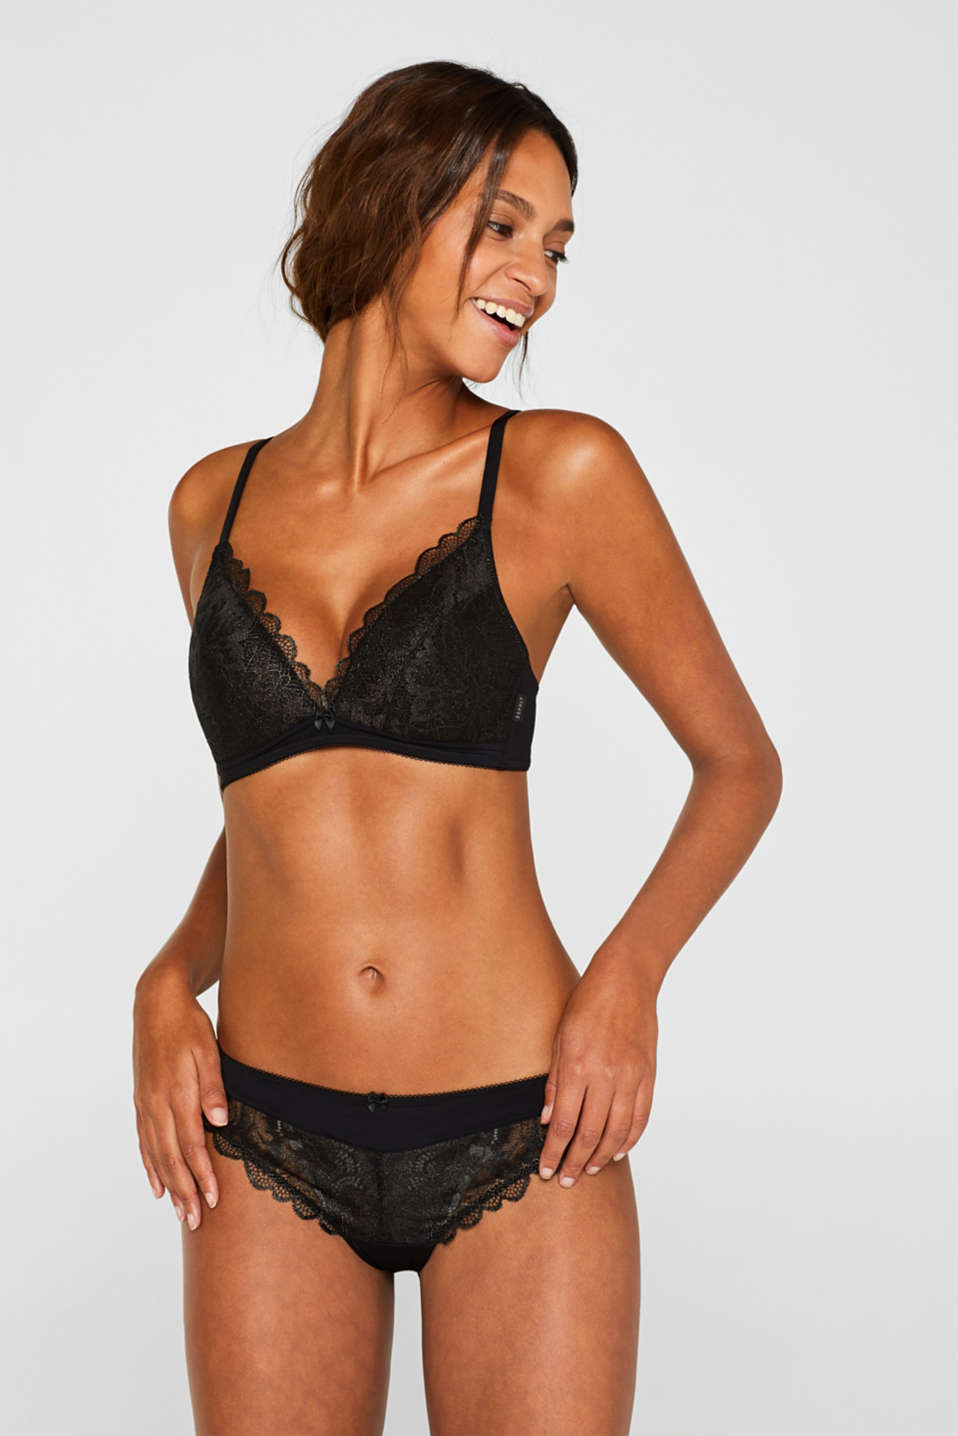 Esprit - Padded, non-wired bra made of shiny, matte lace